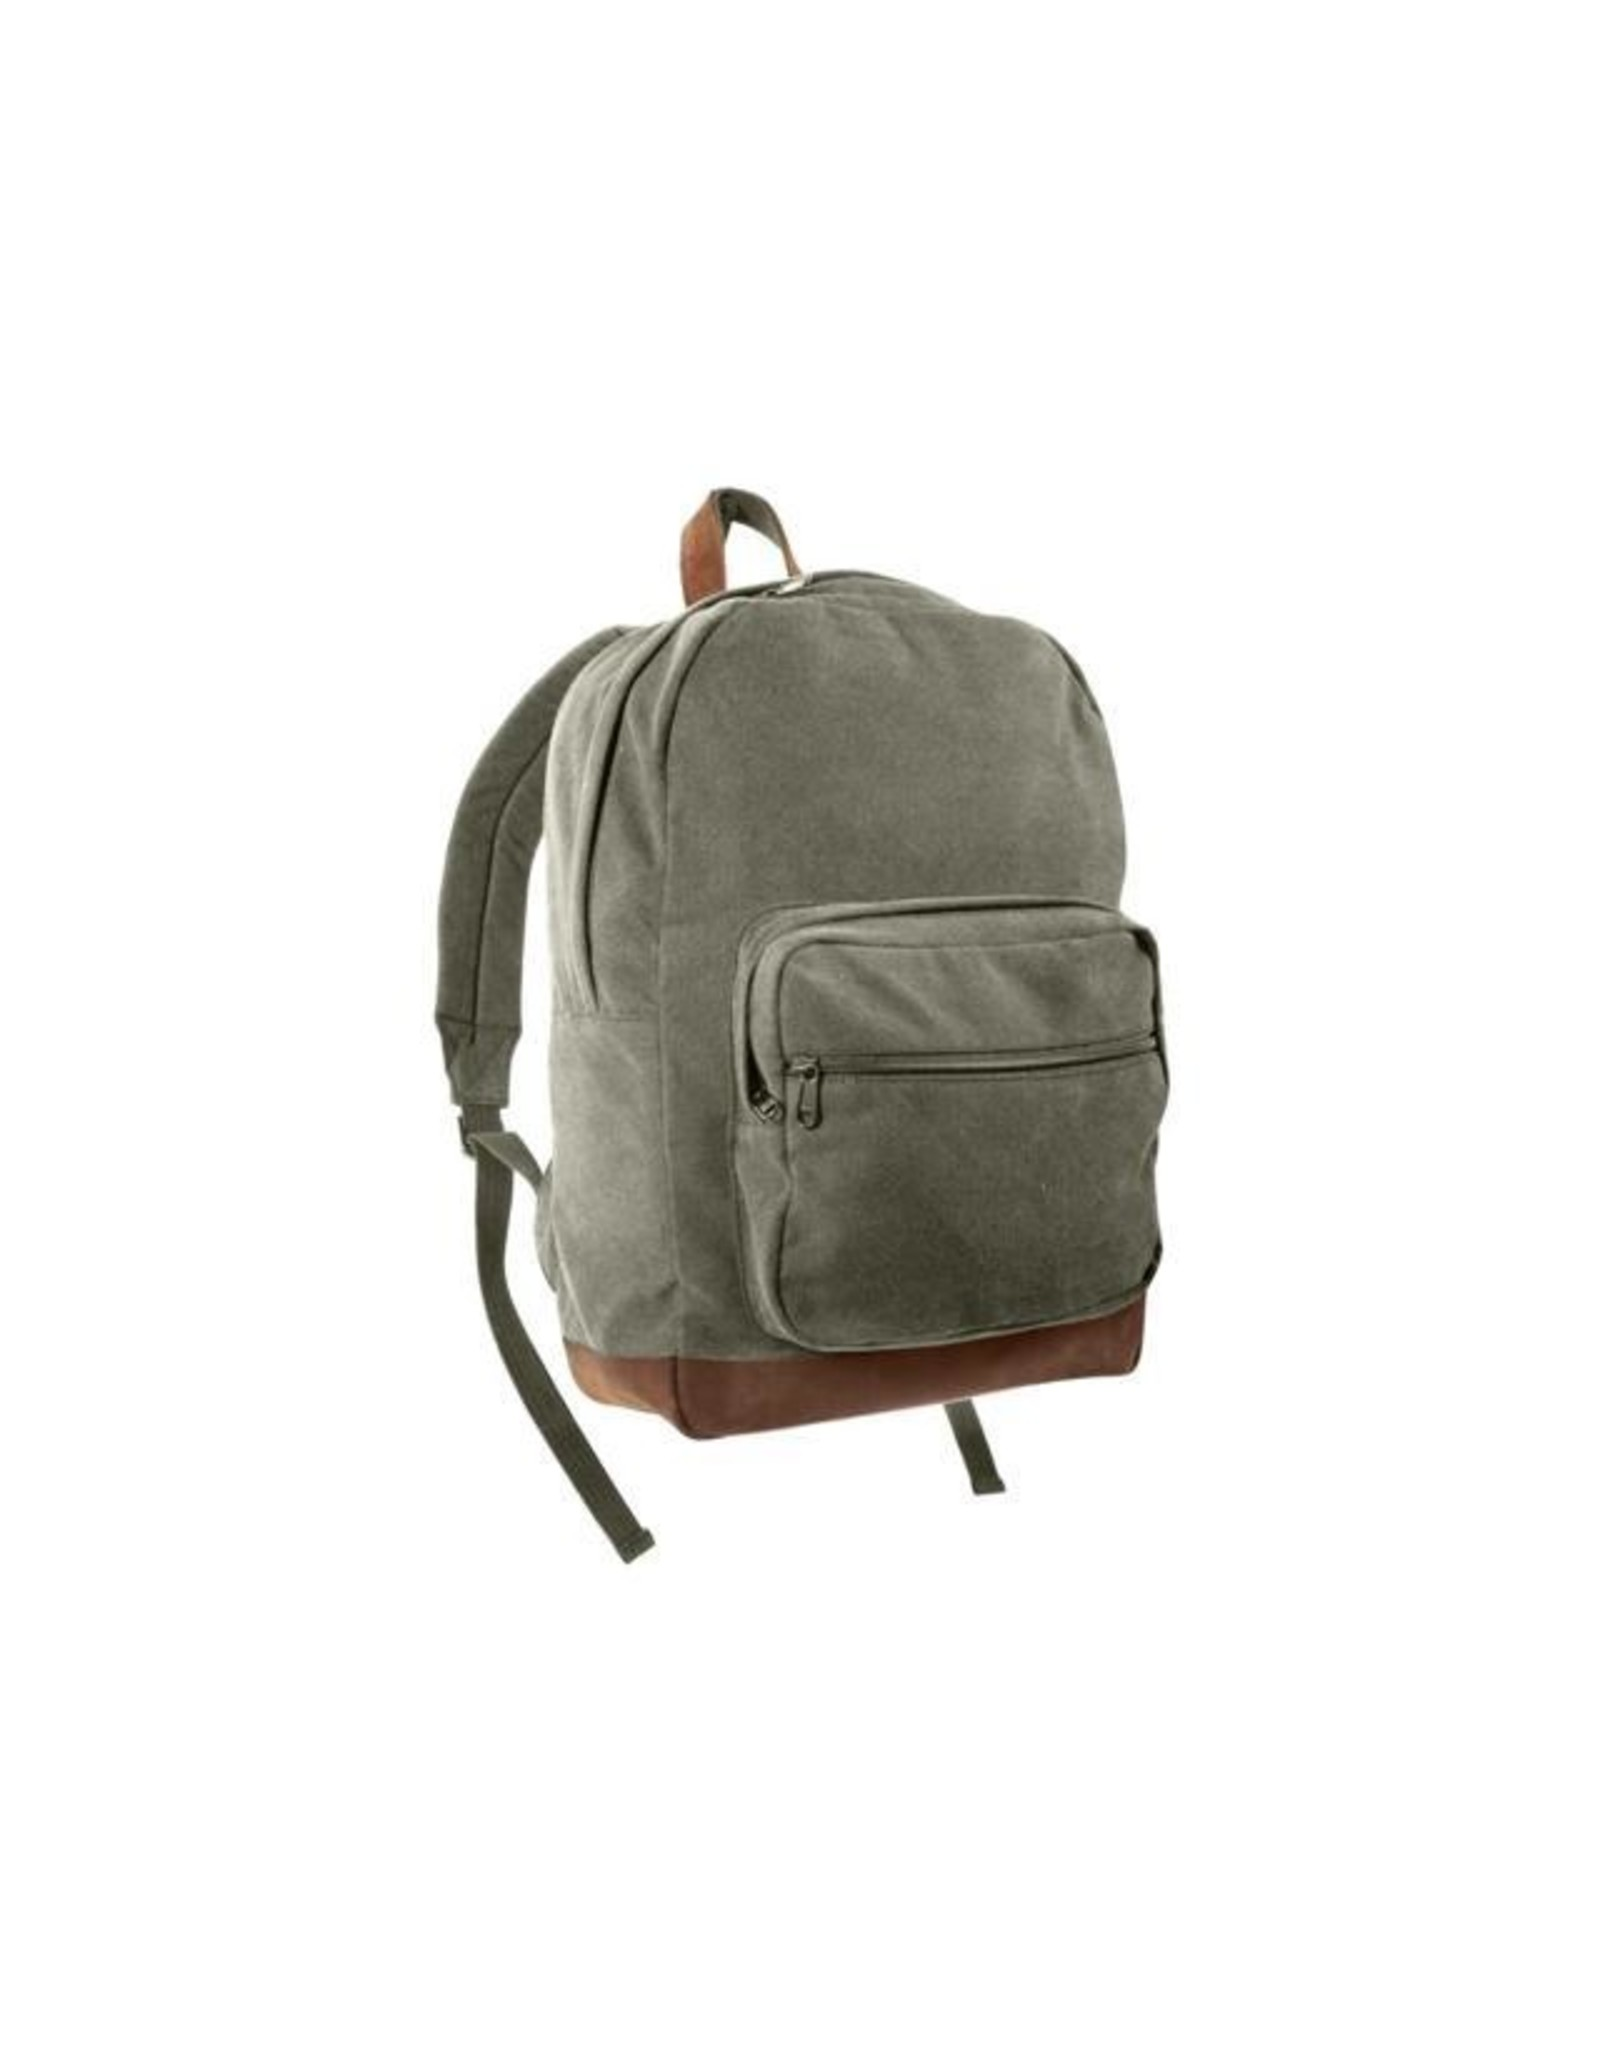 ROTHCO Canvas Teardrop Pack W/ Leather Accents - Olive Drab/Brown